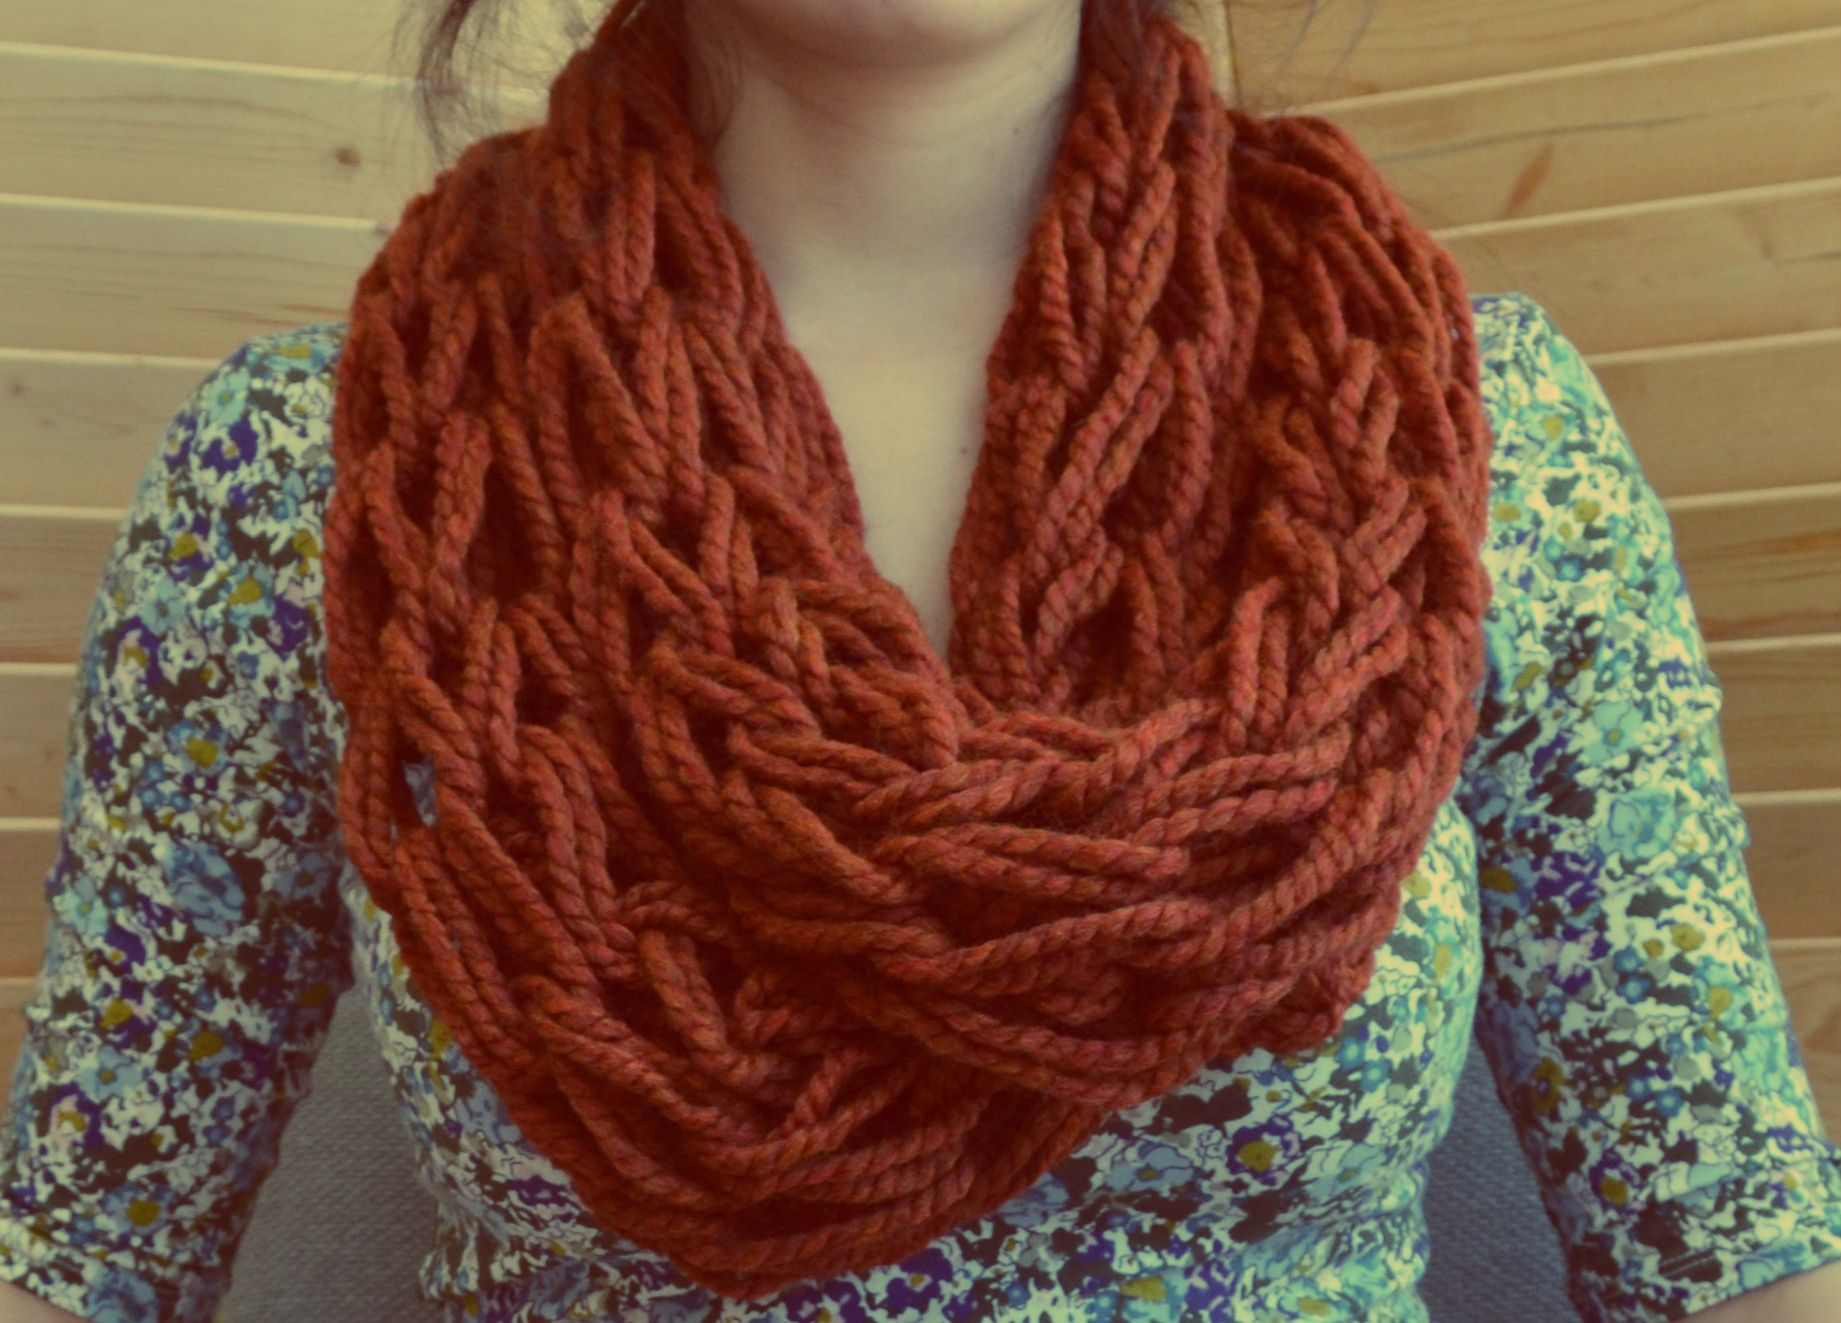 Arm Knitted Scarf :) Took only 30 minutes to do !